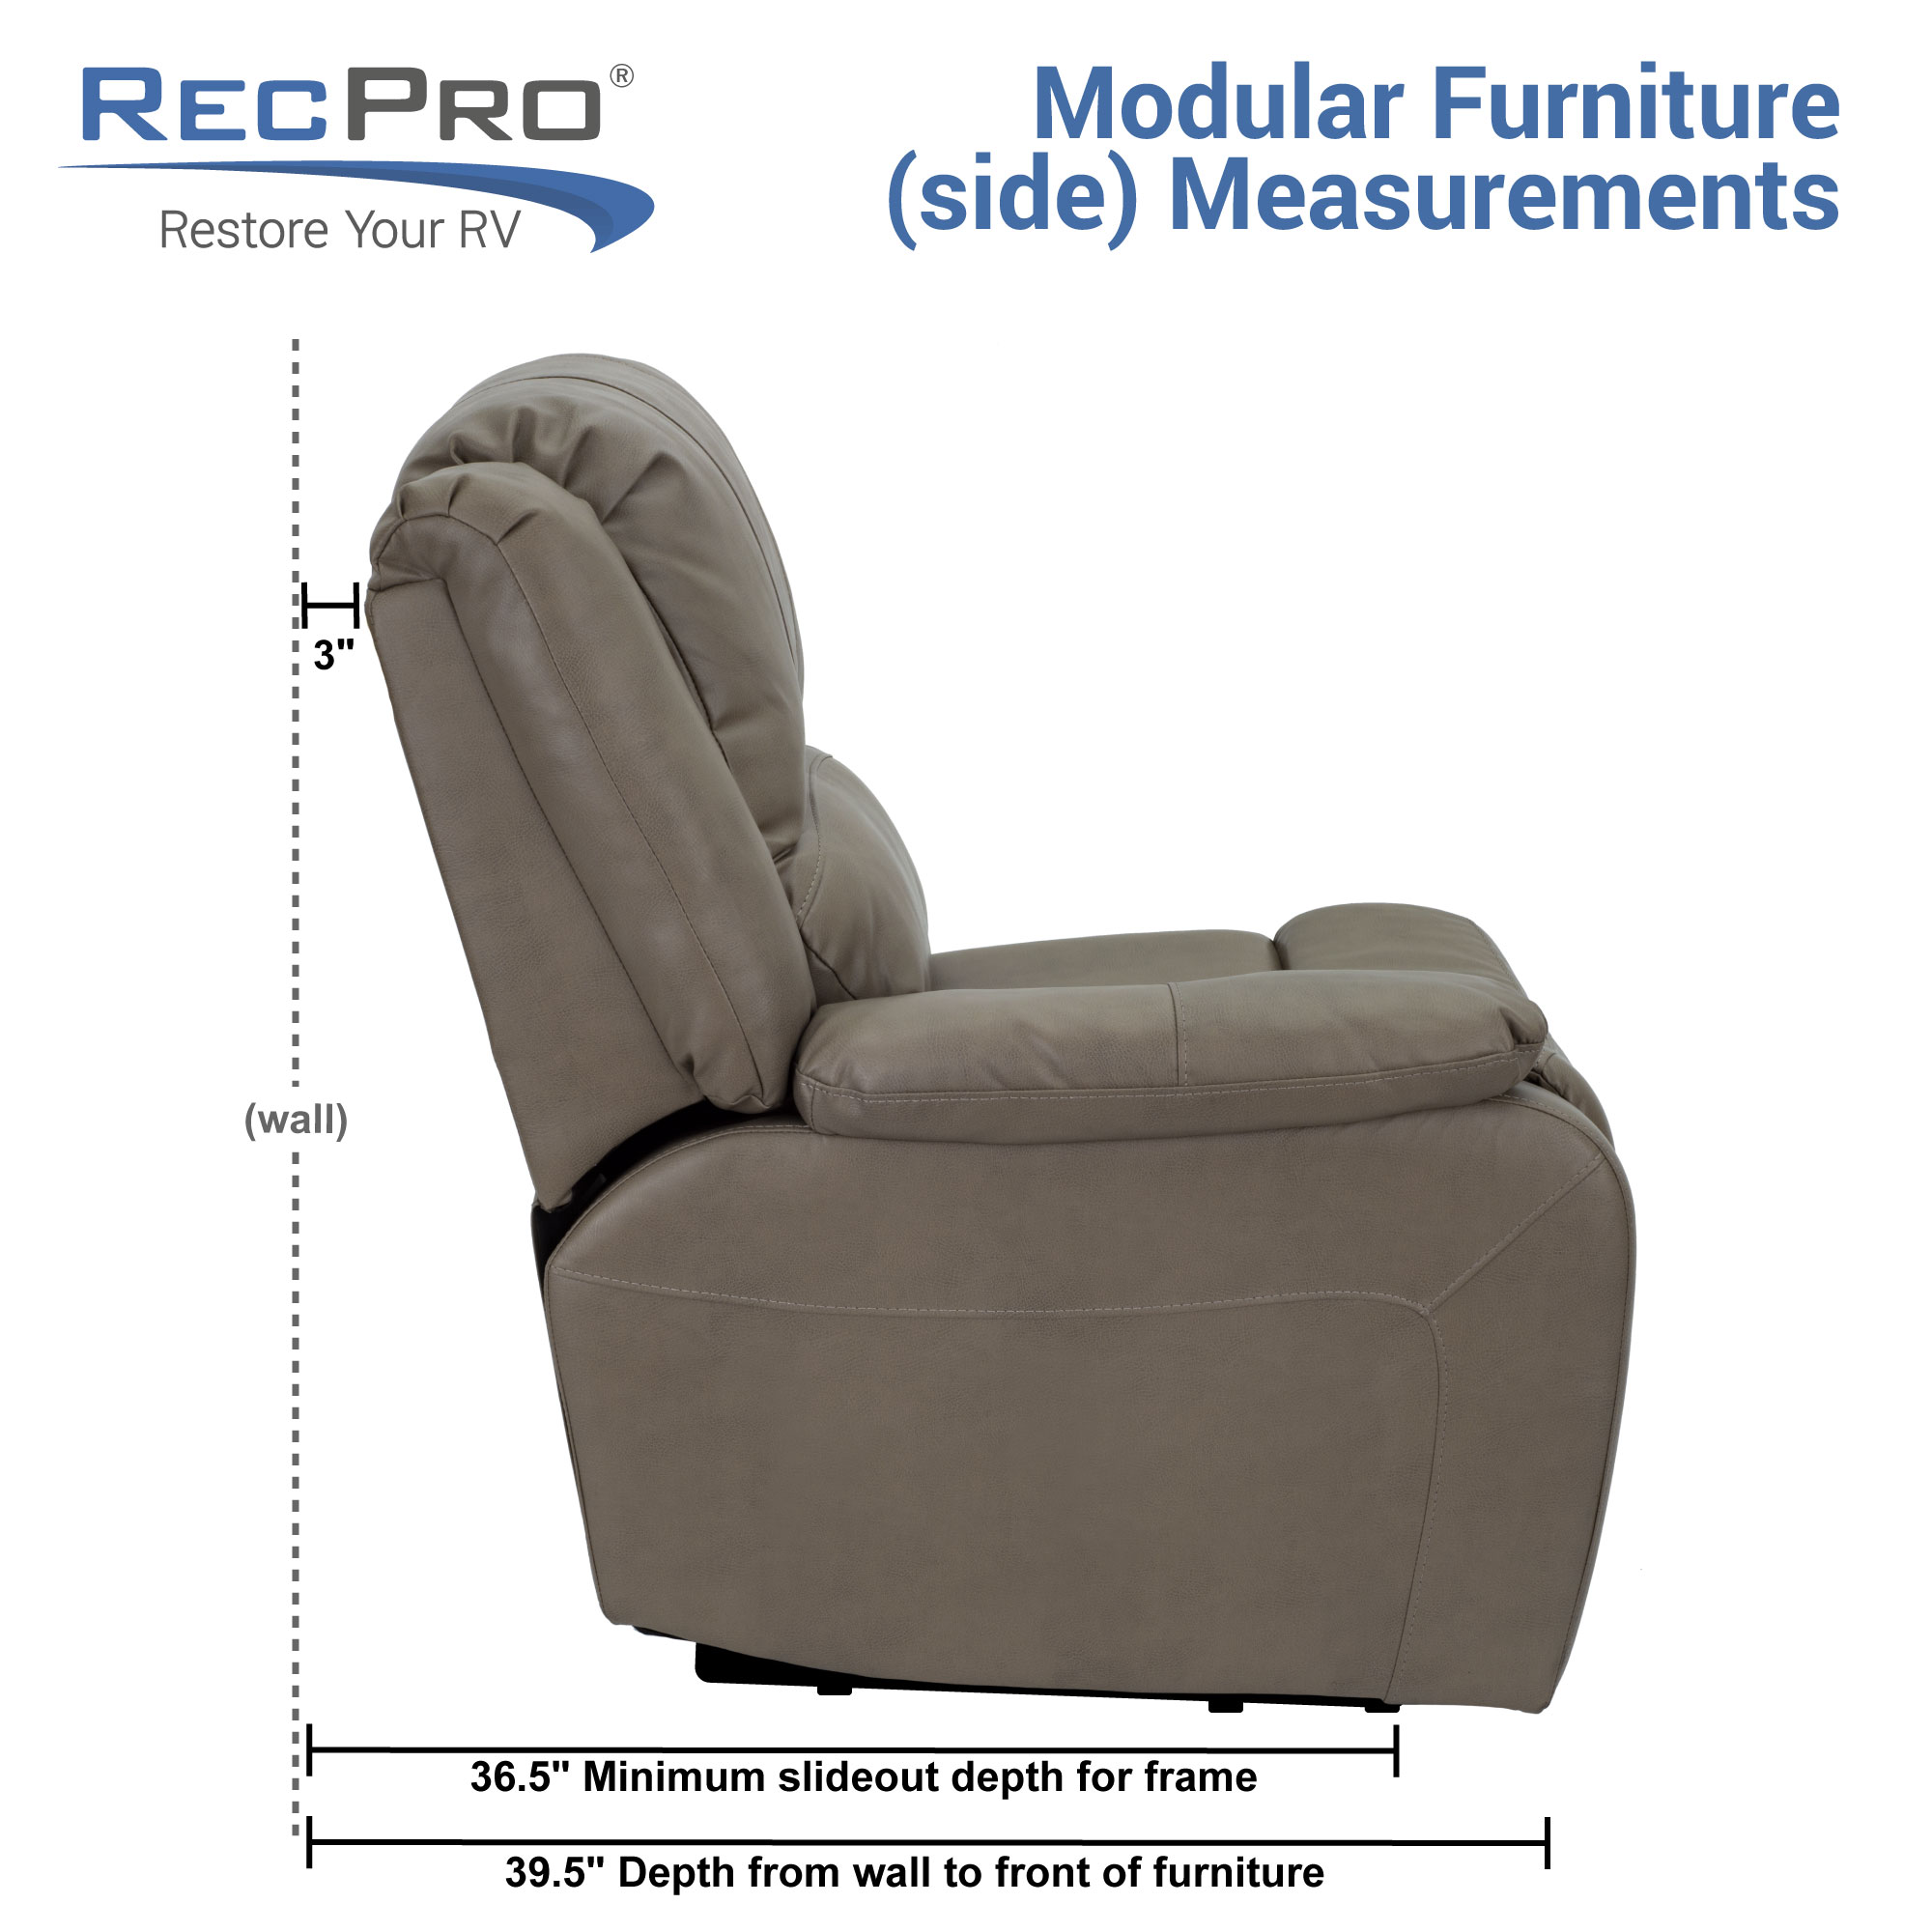 RV Double Recliner Measurements